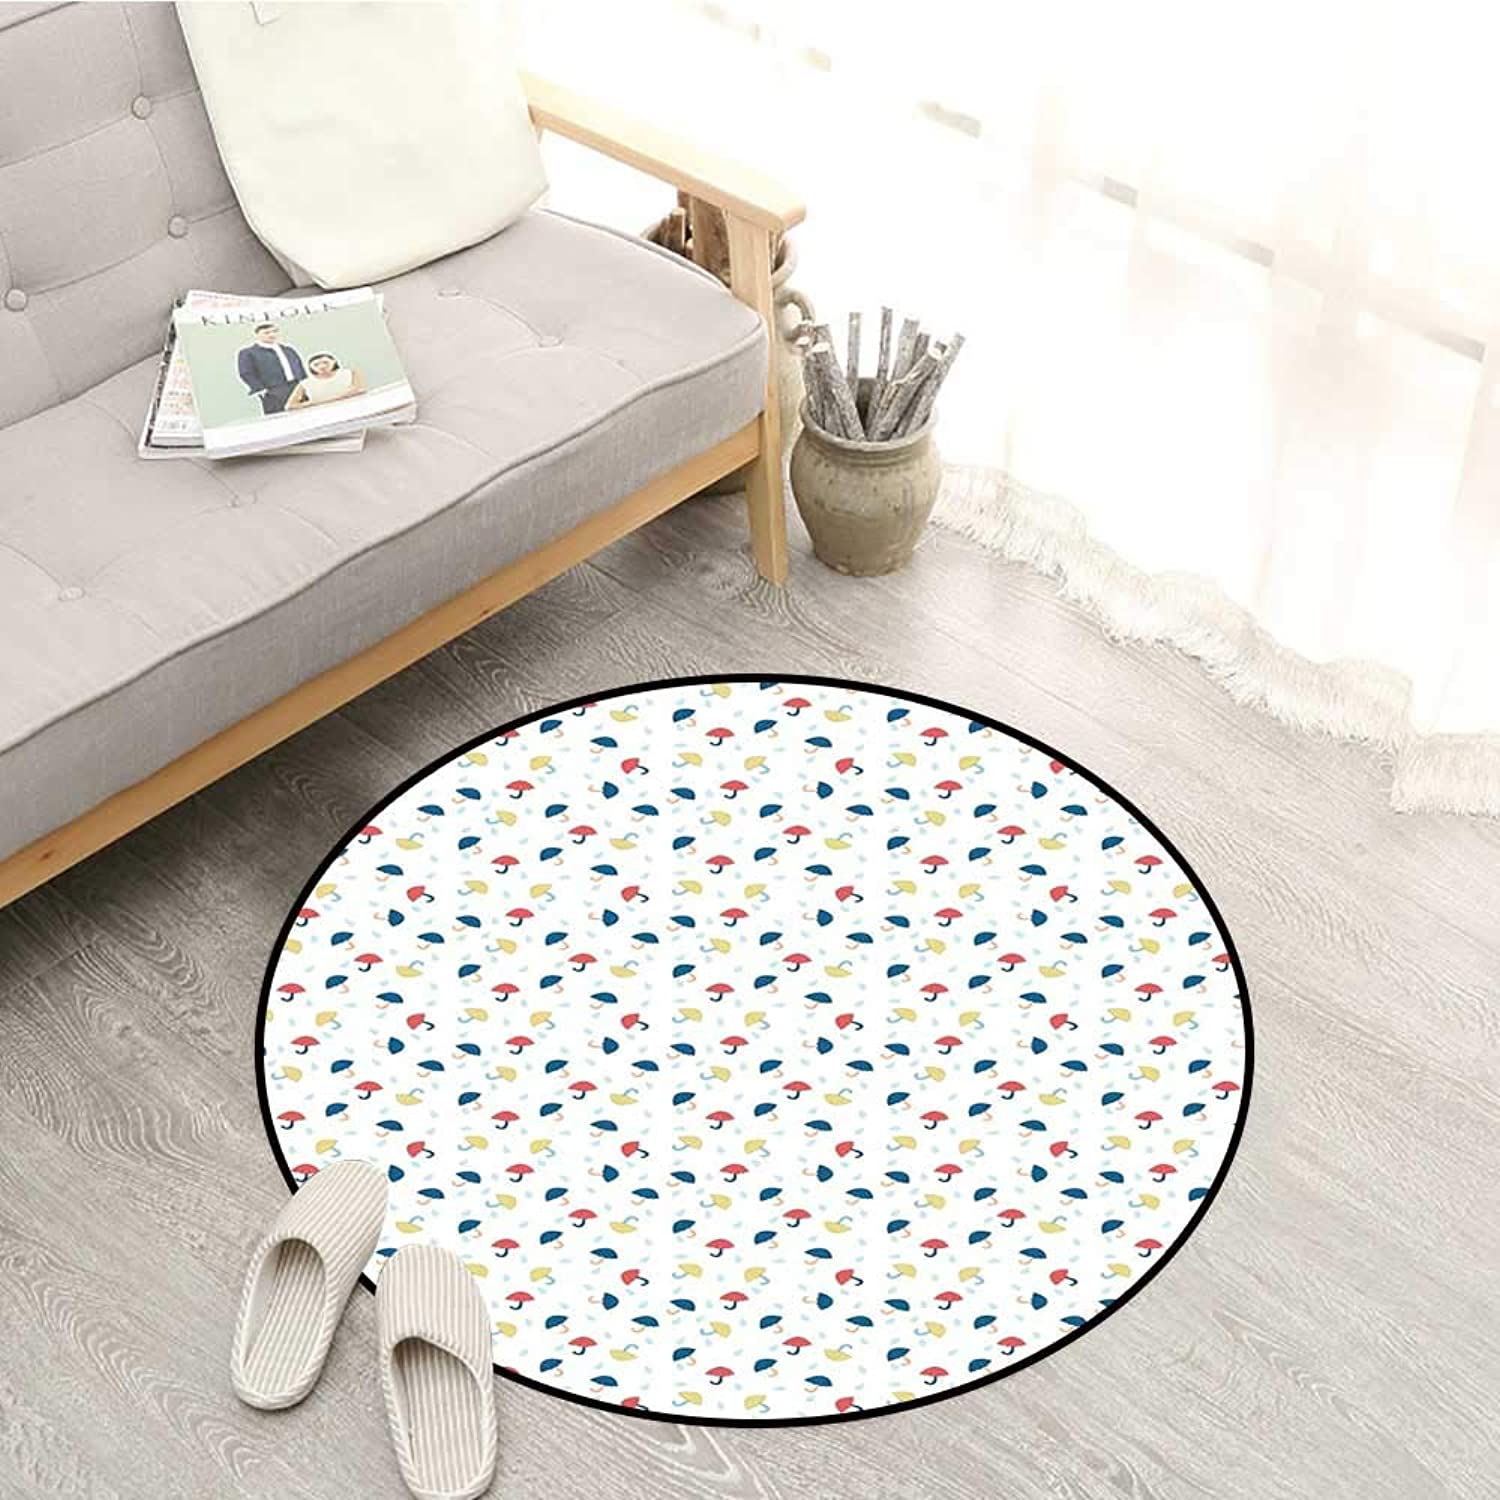 Umbrella Carpets Cute and colorful Kids Umbrellas in Disorder with Pale bluee Rain Water Droplets Sofa Coffee Table Mat 4'3  Multicolor